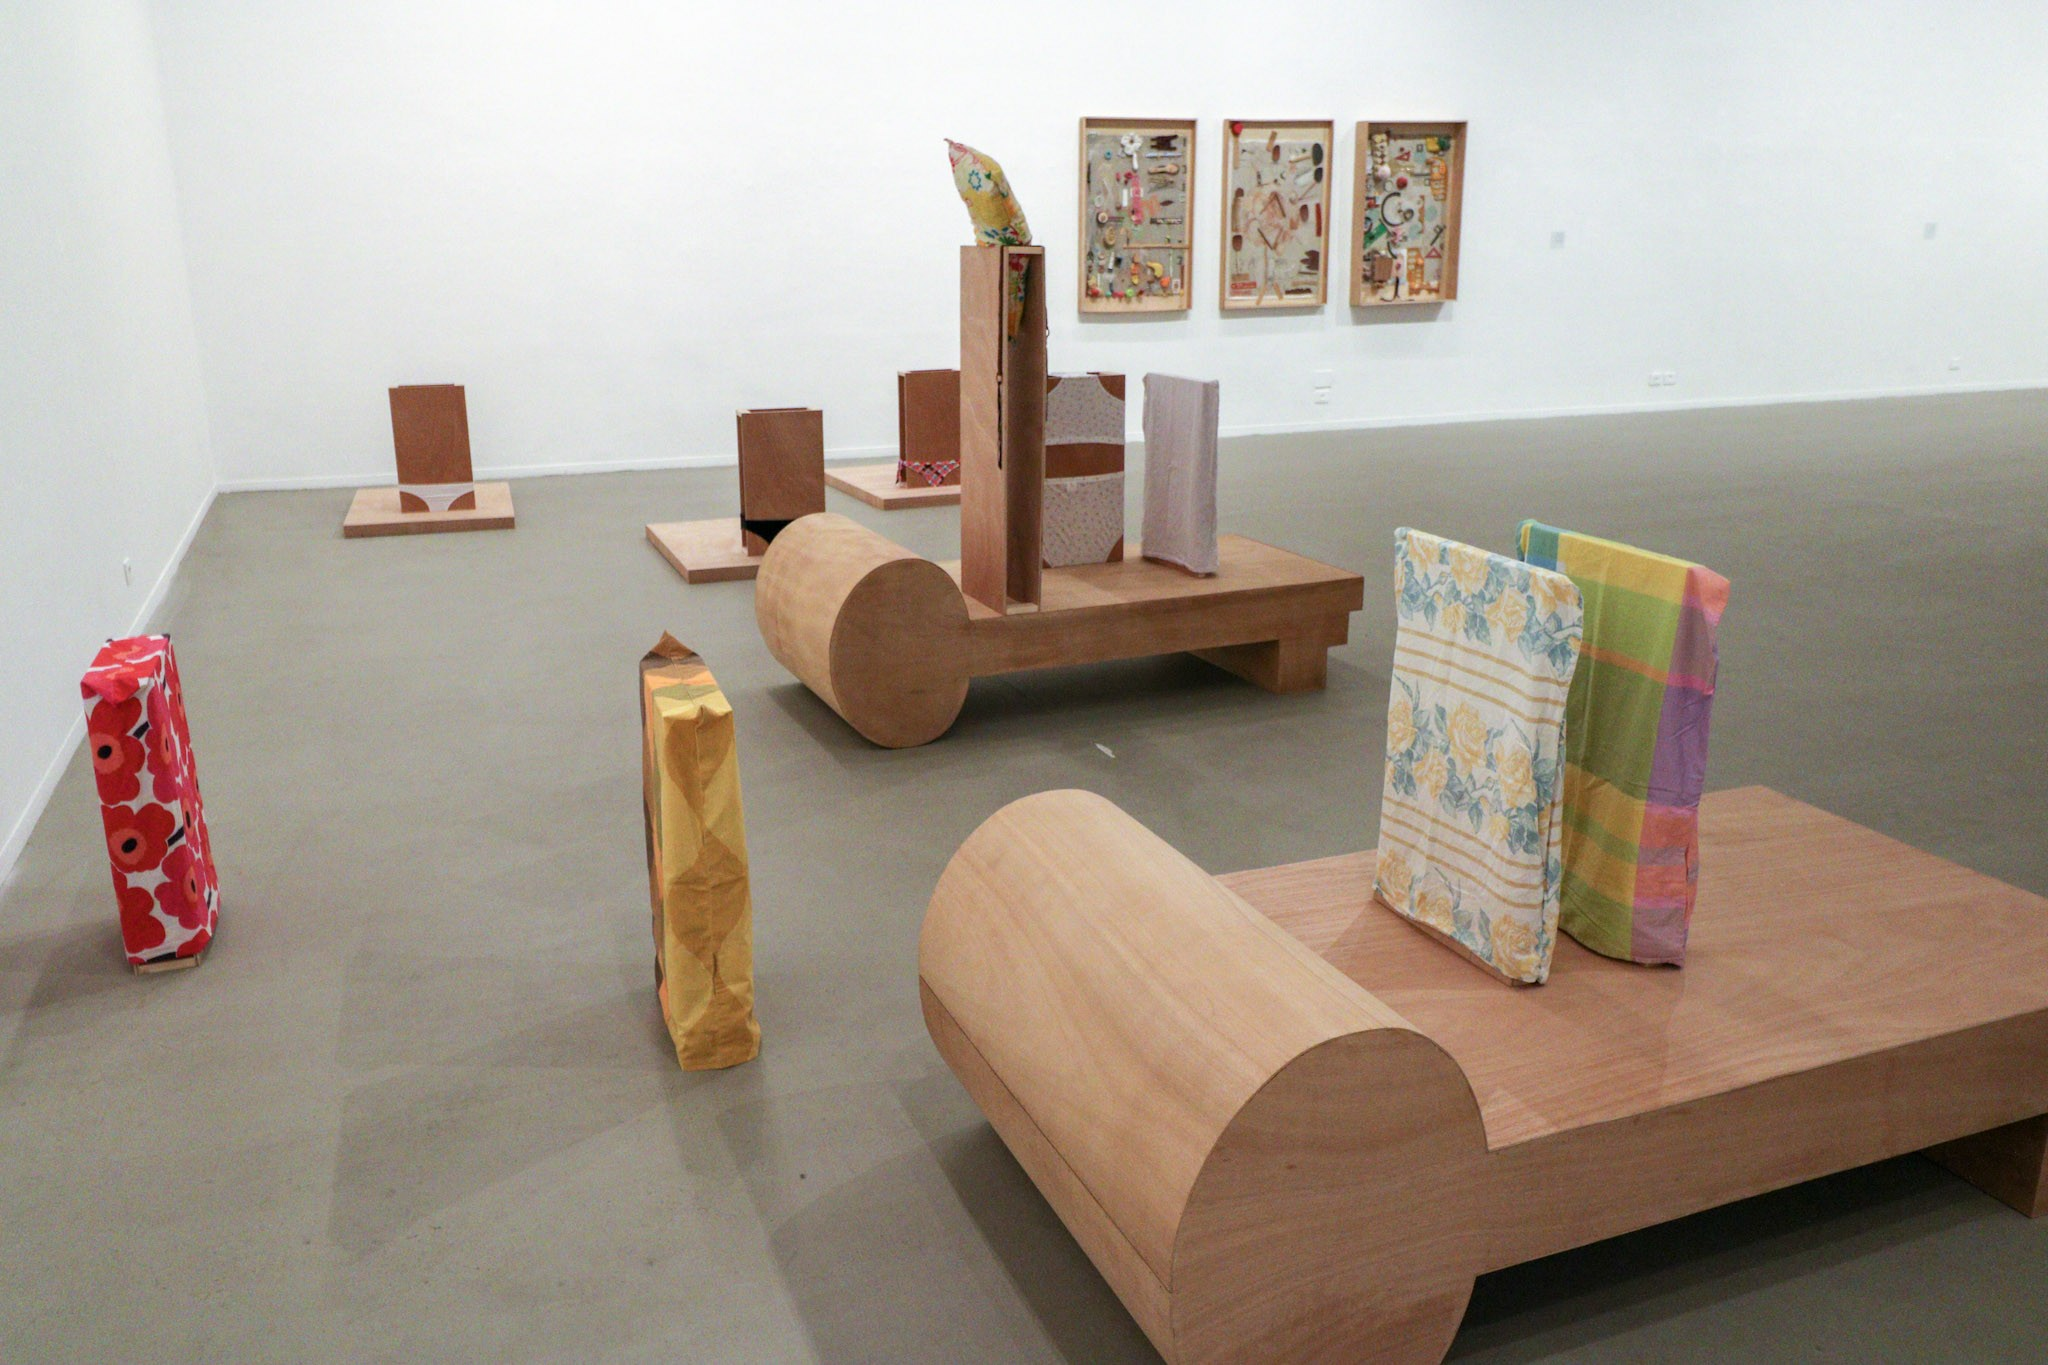 Yitzhak Golombek: GolemBok, exhibition featuring Golombek's work from the 1980s to the present in Tel Aviv Museum of Art, till 27 April 2019